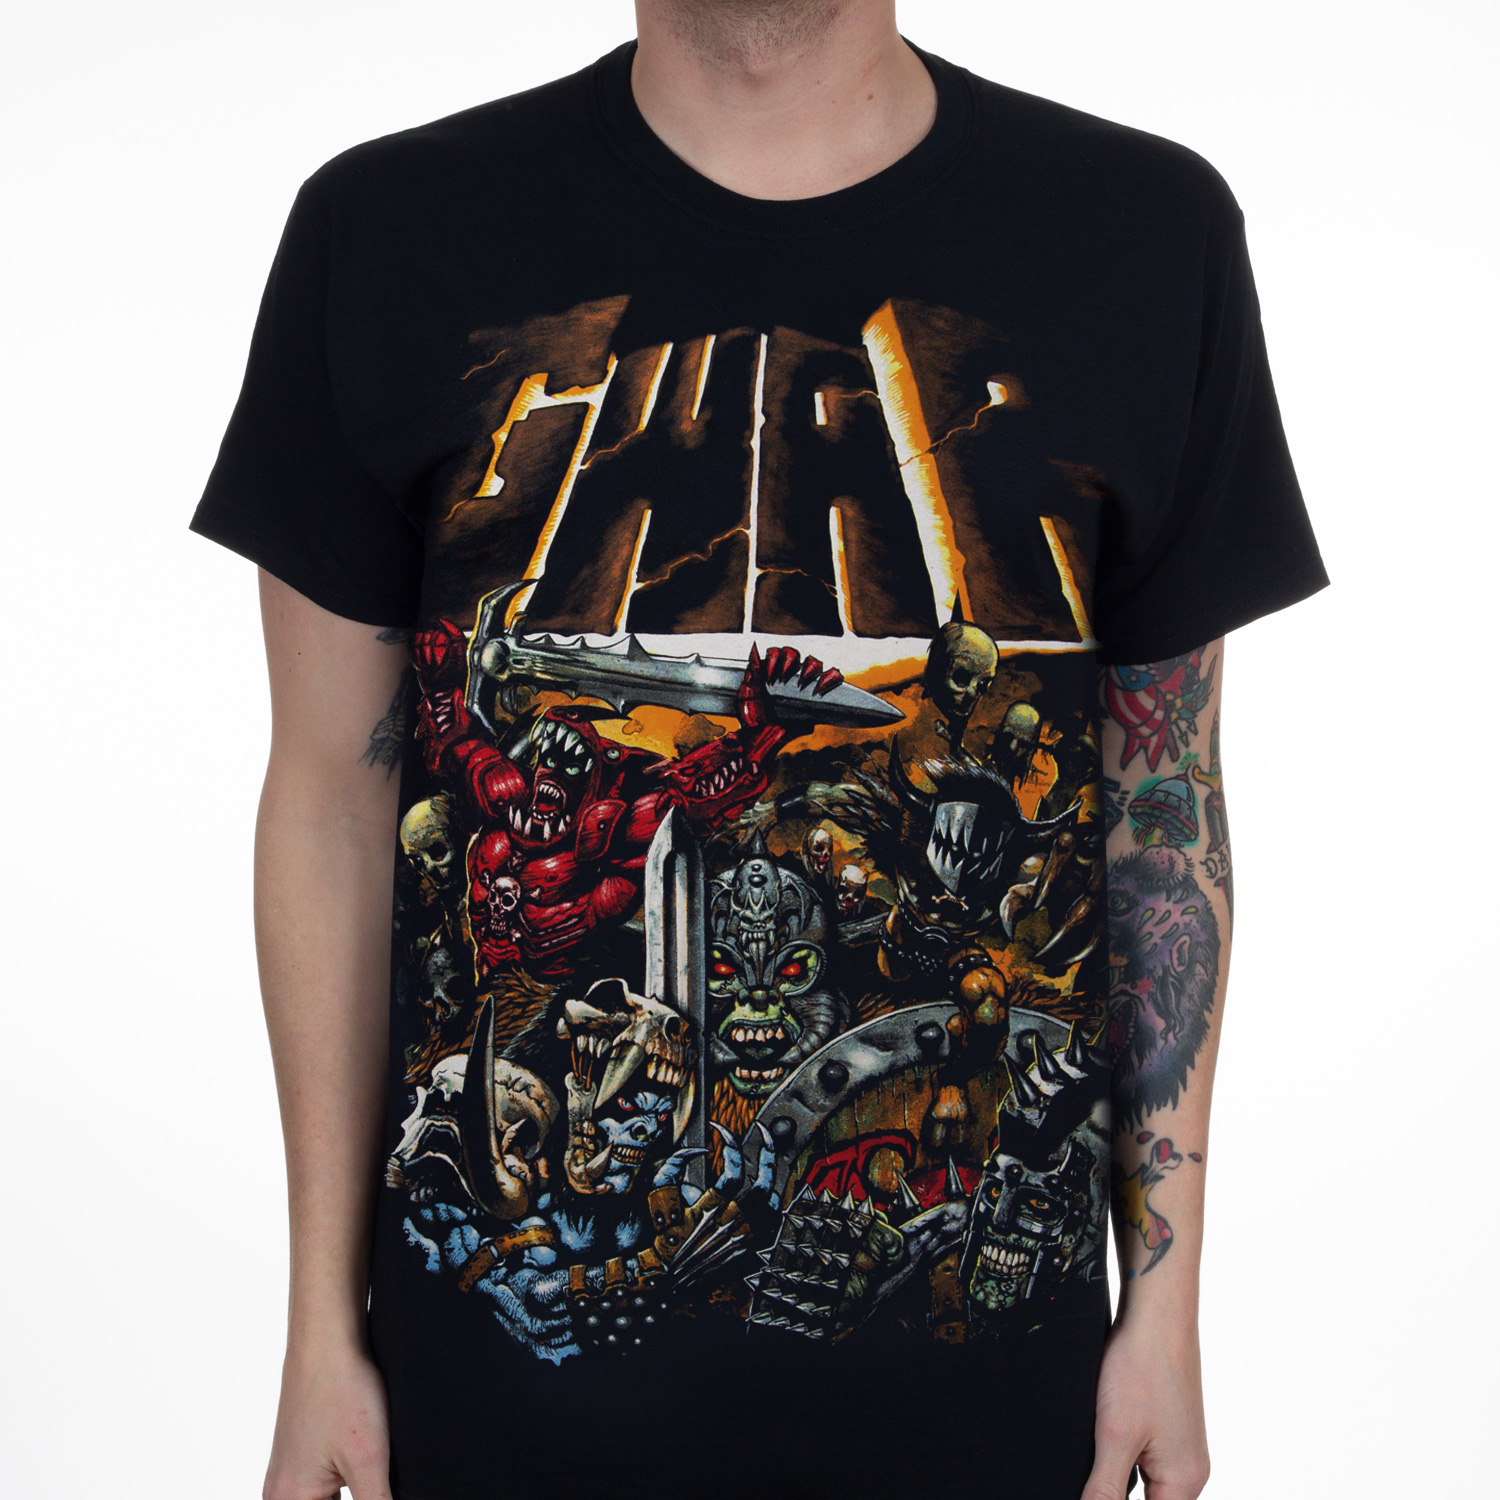 The Blood Of Gods Album Art Tour Tee